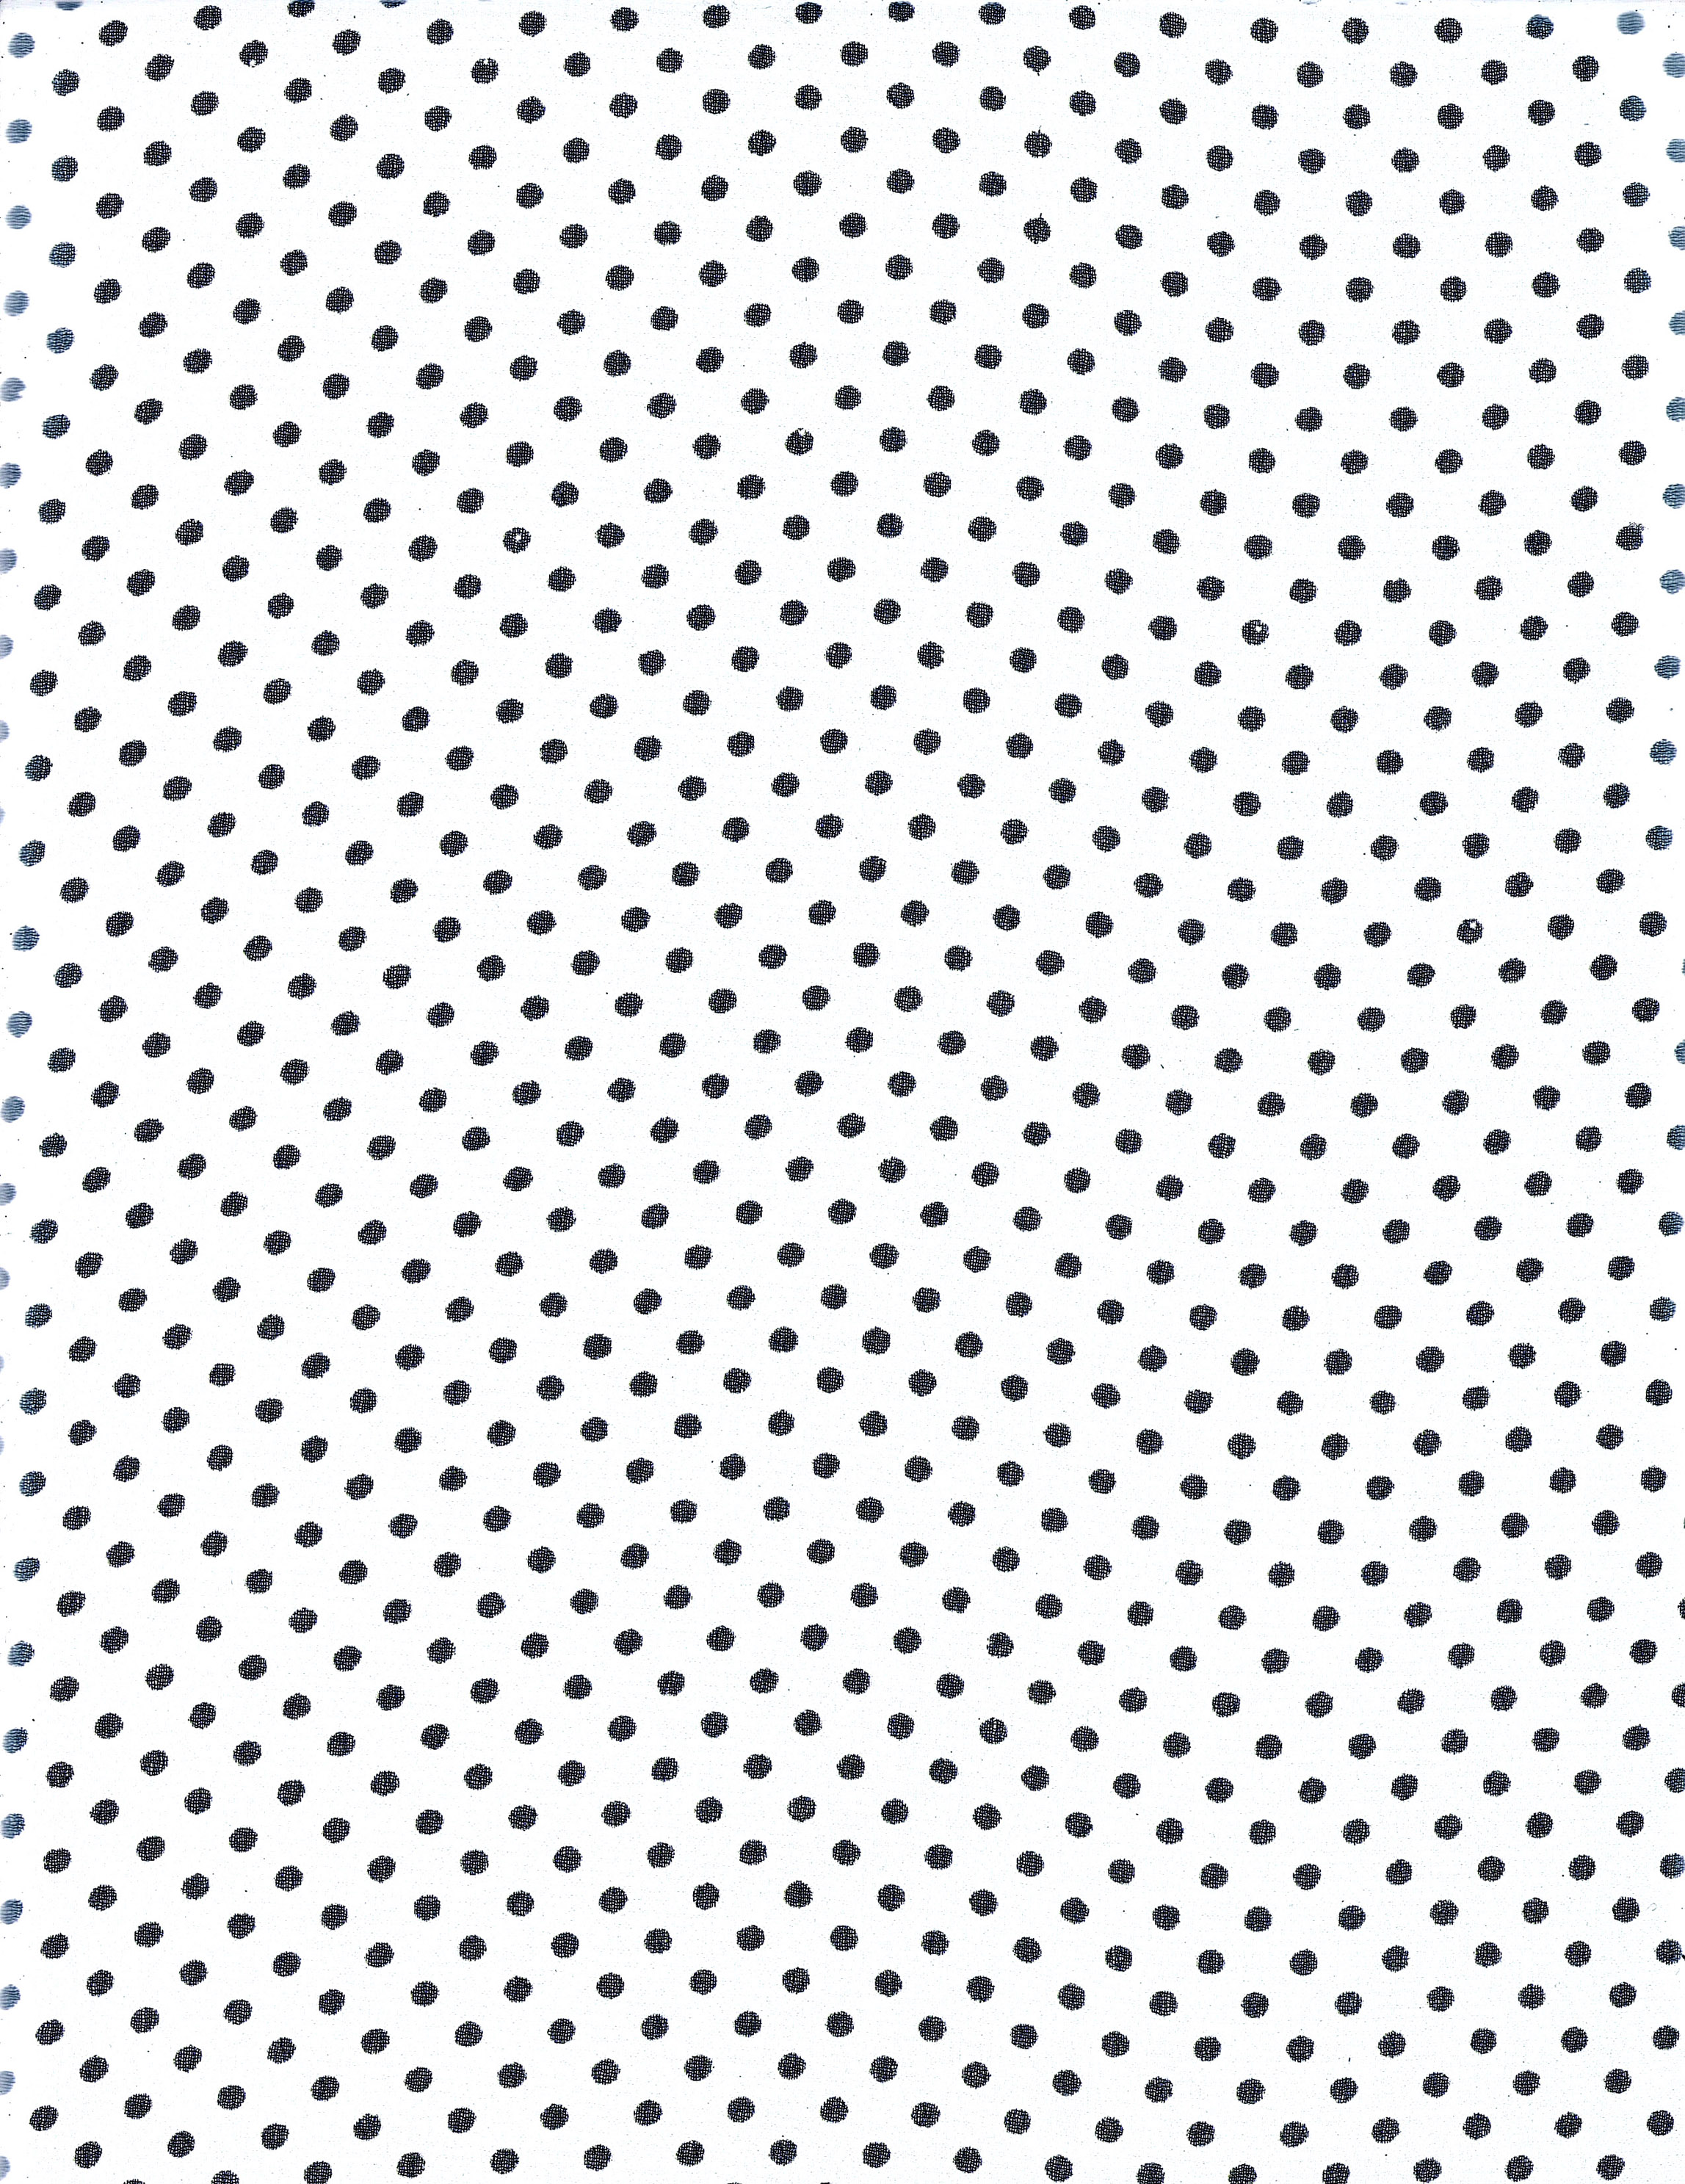 Pics photos wallpaper polka dots in black and white